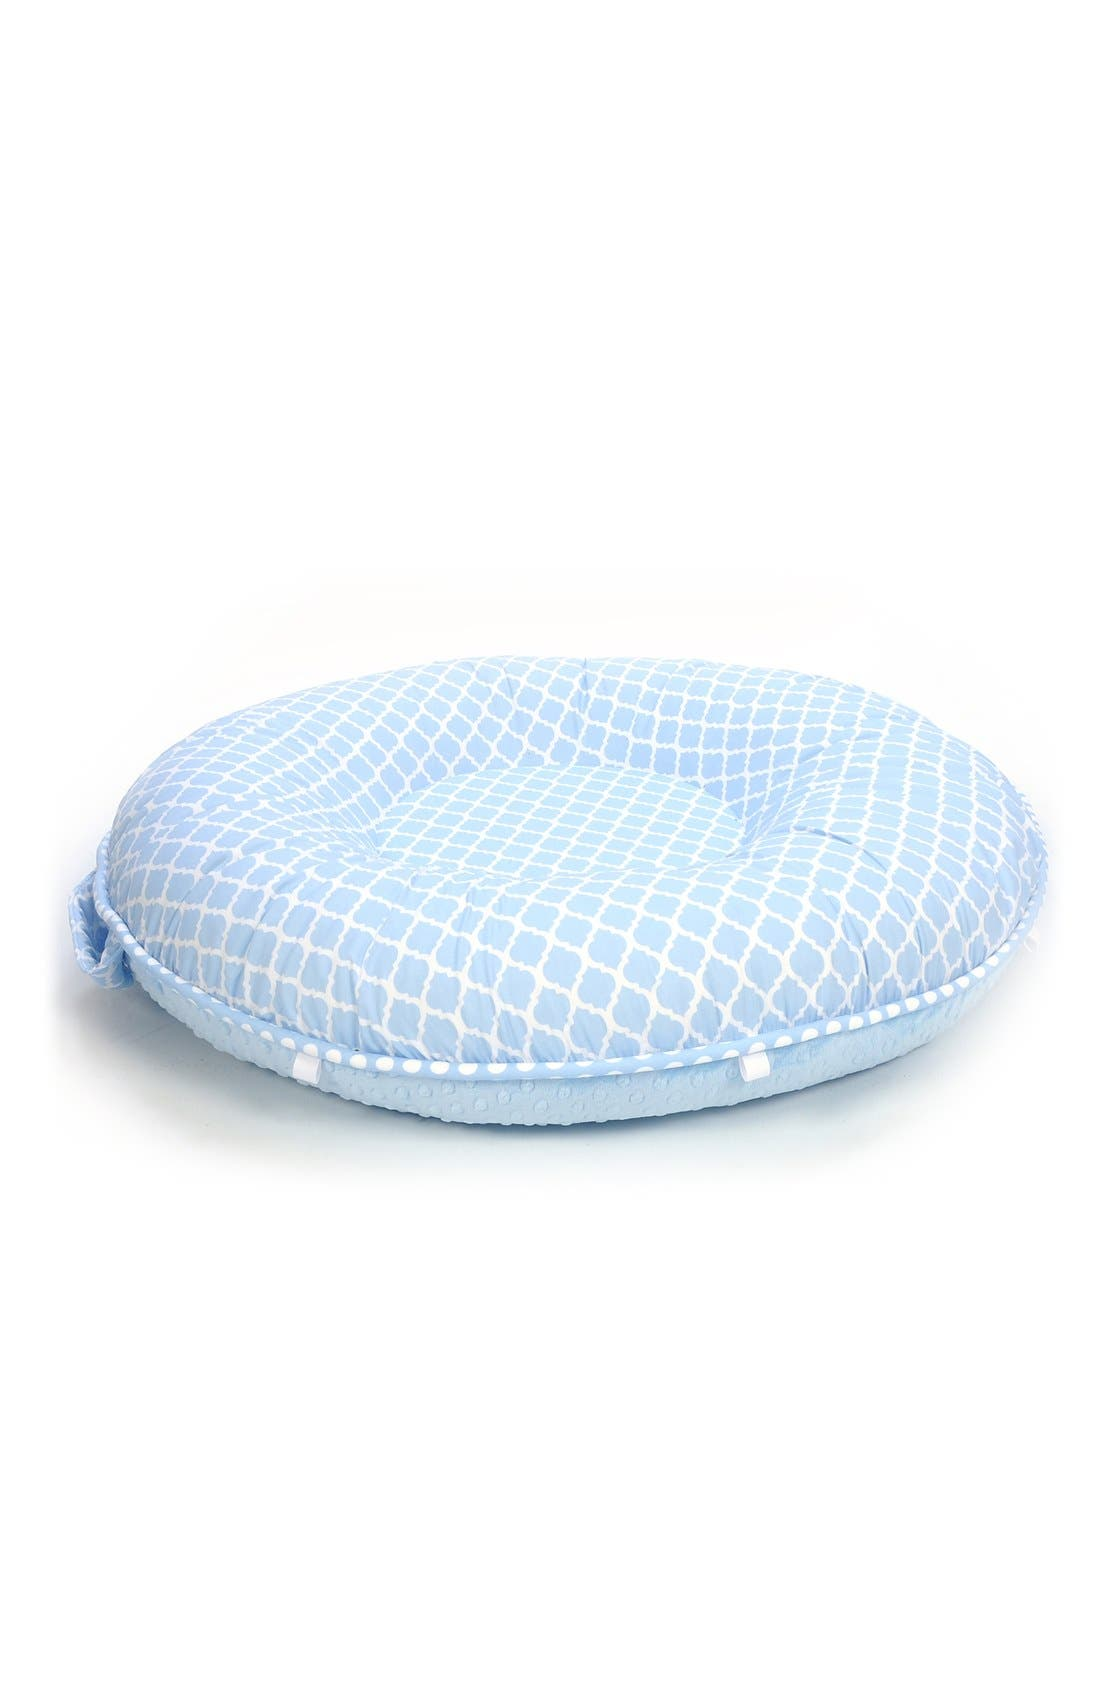 Alternate Image 1 Selected - Pello 'Jack' Portable Floor Pillow